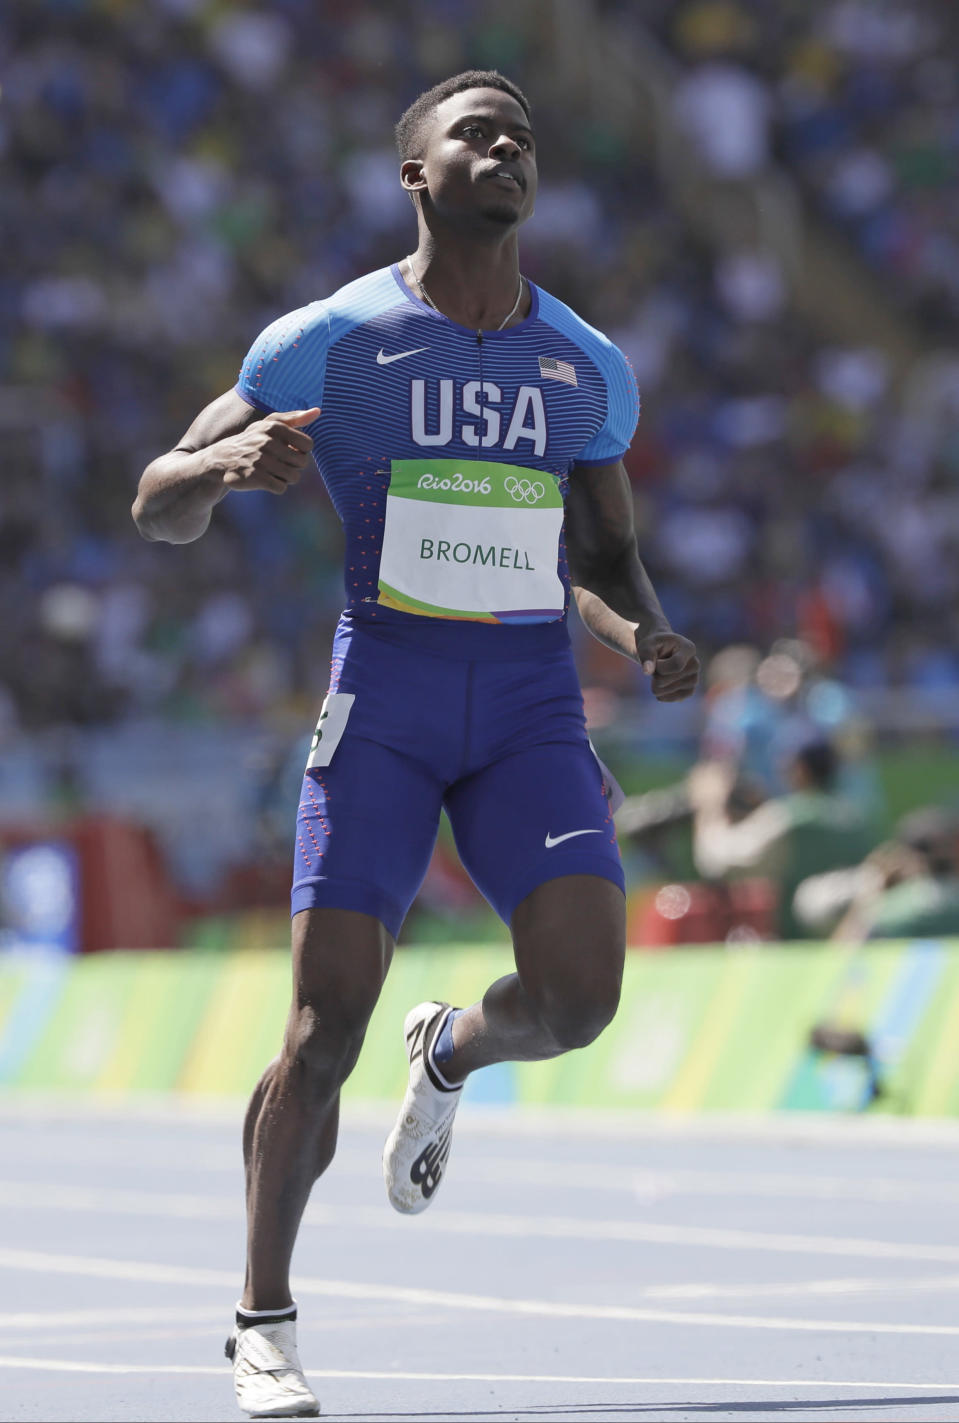 FILE - In this Aug. 13, 2016, file photo, United States' Trayvon Bromell places second in a men's 100-meter heat during the athletics competitions of the 2016 Summer Olympics at the Olympic stadium in Rio de Janeiro, Brazil. Bromell is one of the favorites in a 100-meter field that includes Noah Lyles and veteran Justin Gatlin at the U.S. Olympic track and field trials. (AP Photo/David J. Phillip, File)